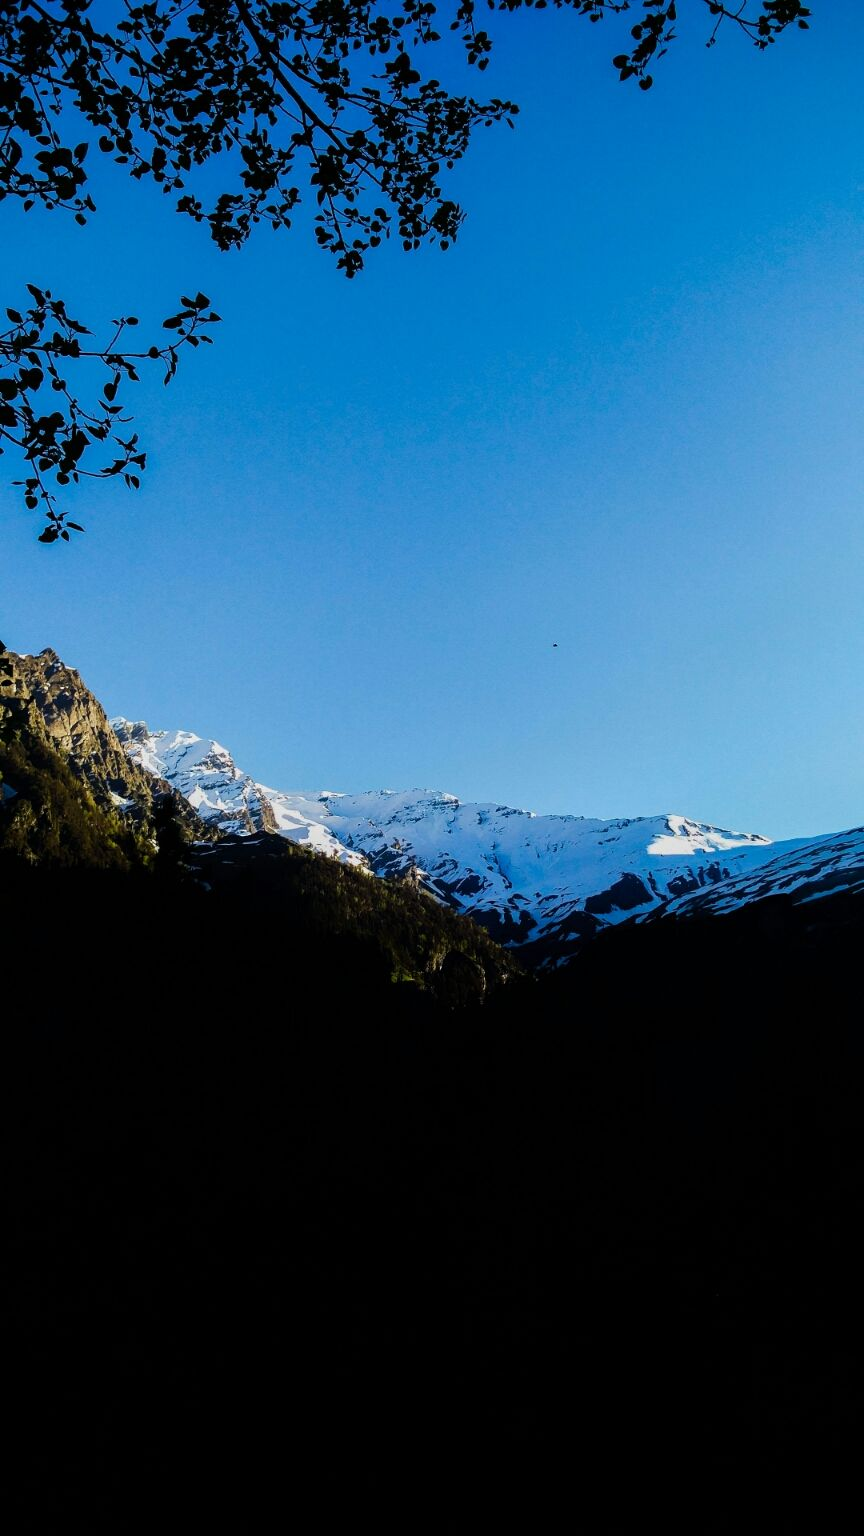 Photo of Manali By Deepesh dhonde